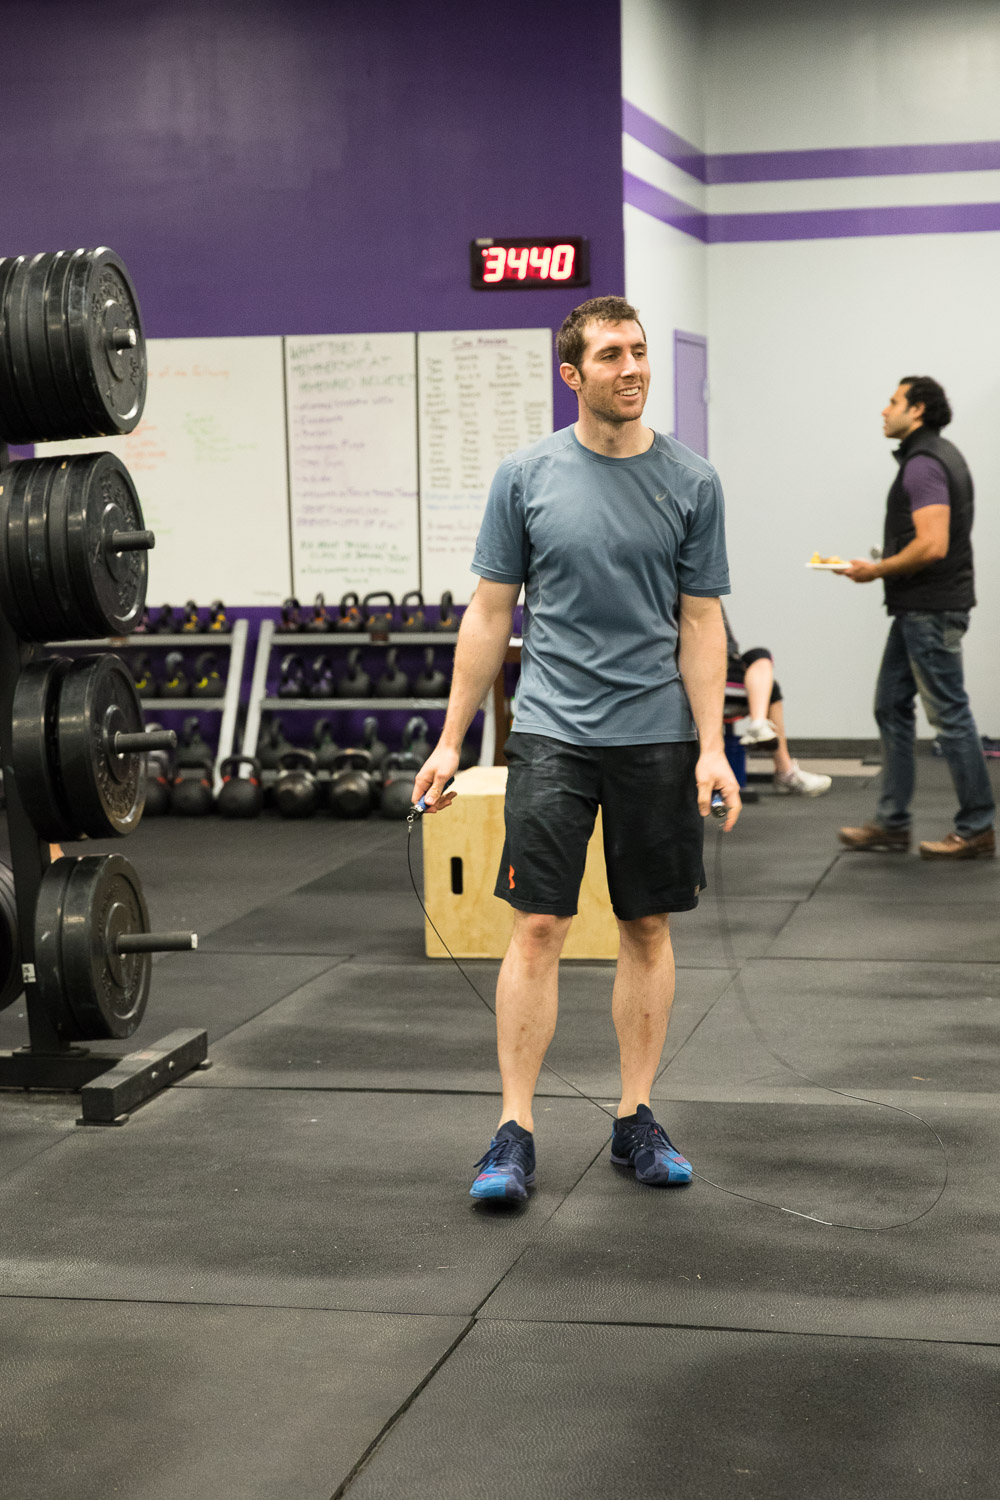 crossfit_homeward-62.jpg